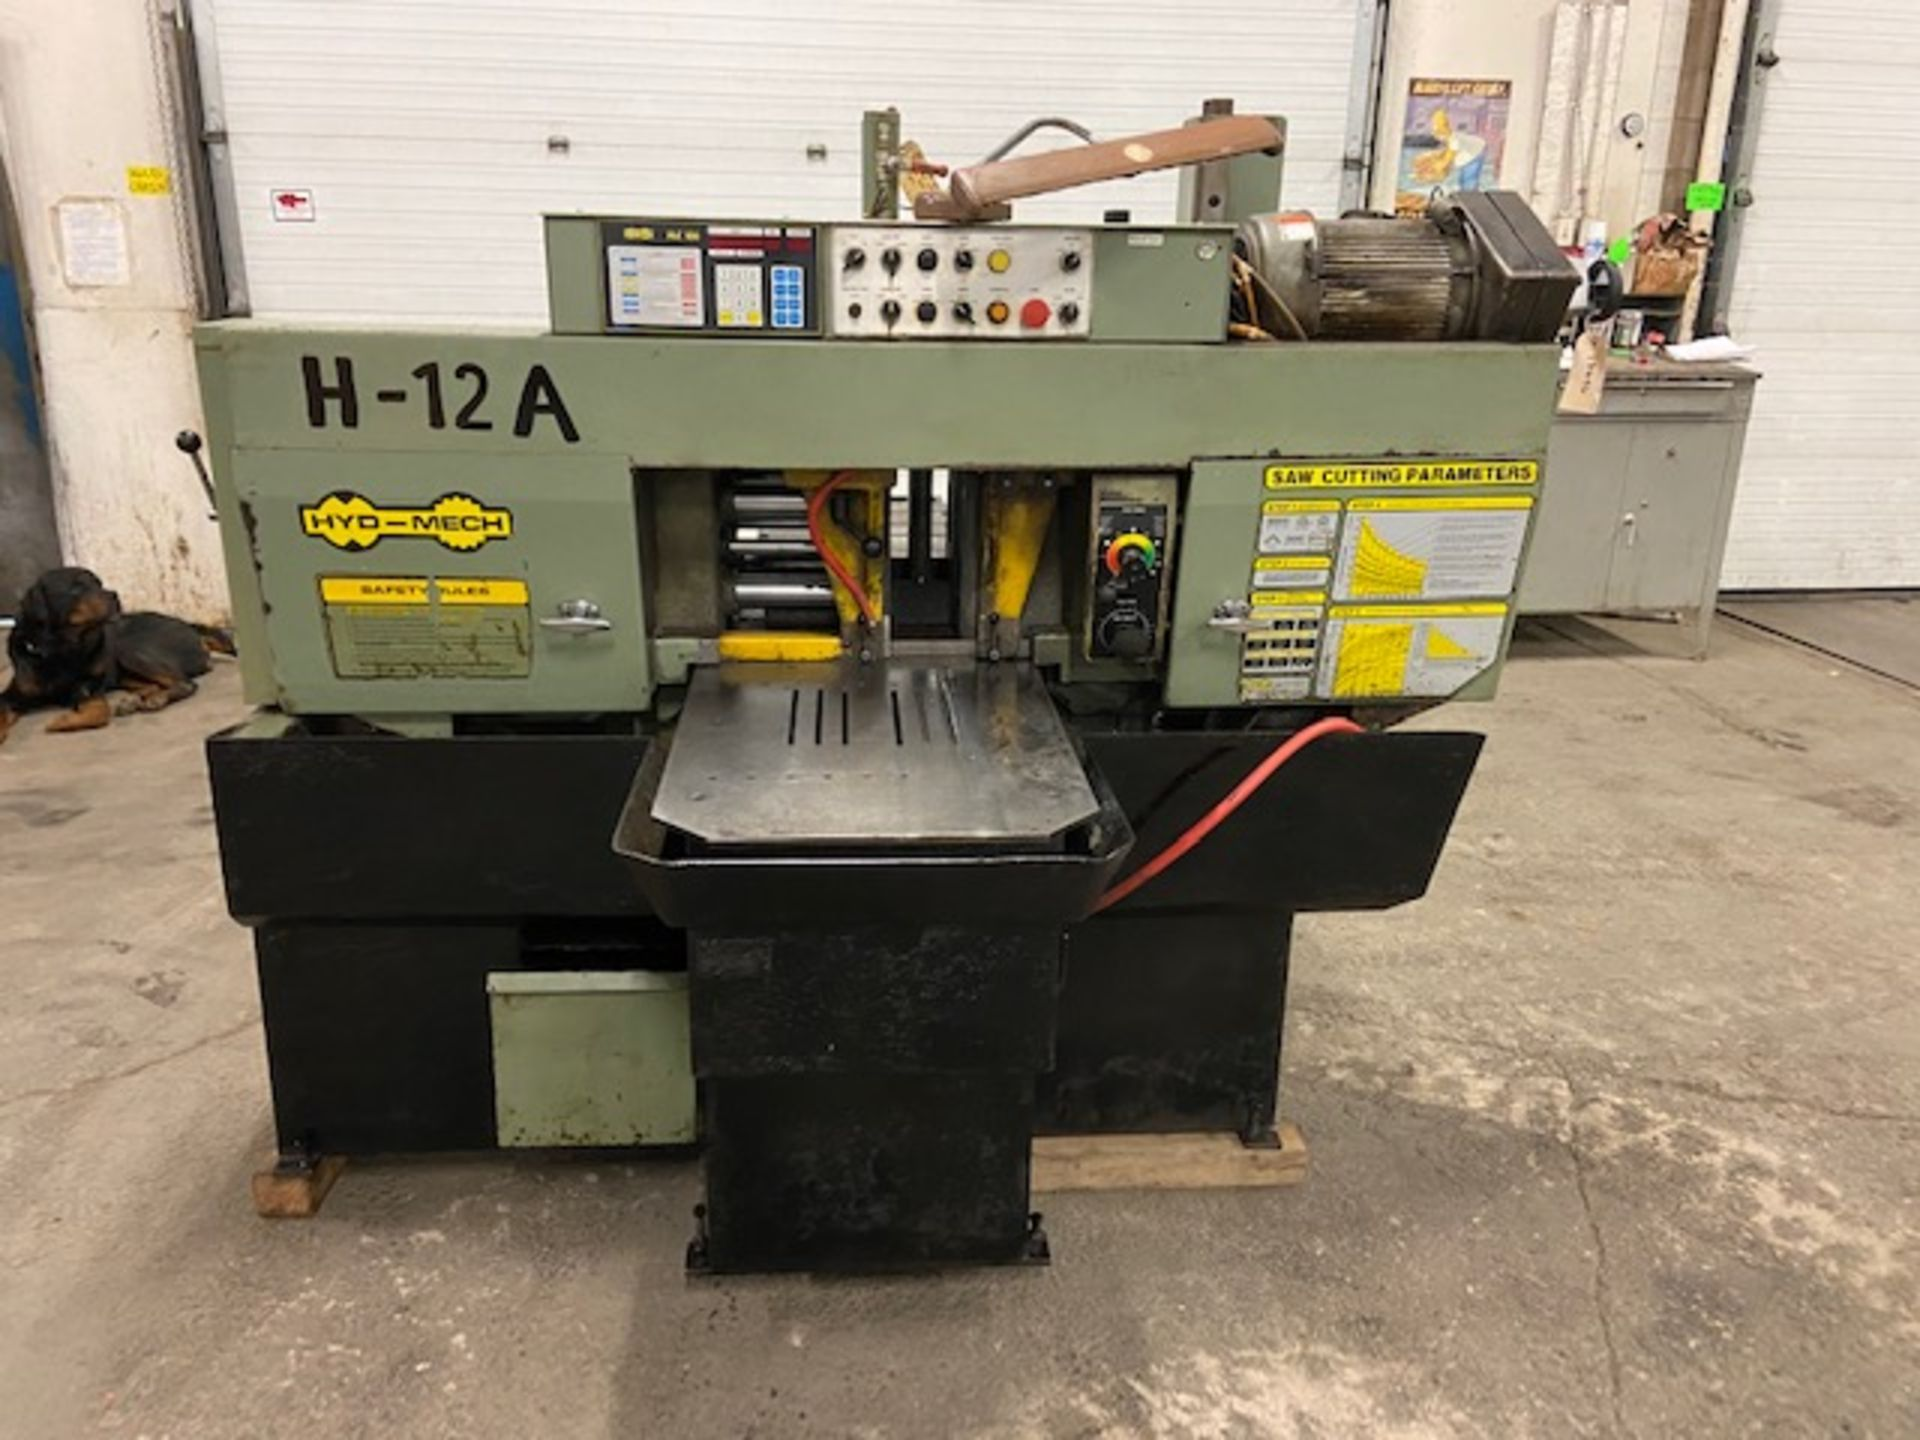 Hyd-Mech H-12A Fully Automatic Horizontal Bandsaw - with automatic clamping and bundling and